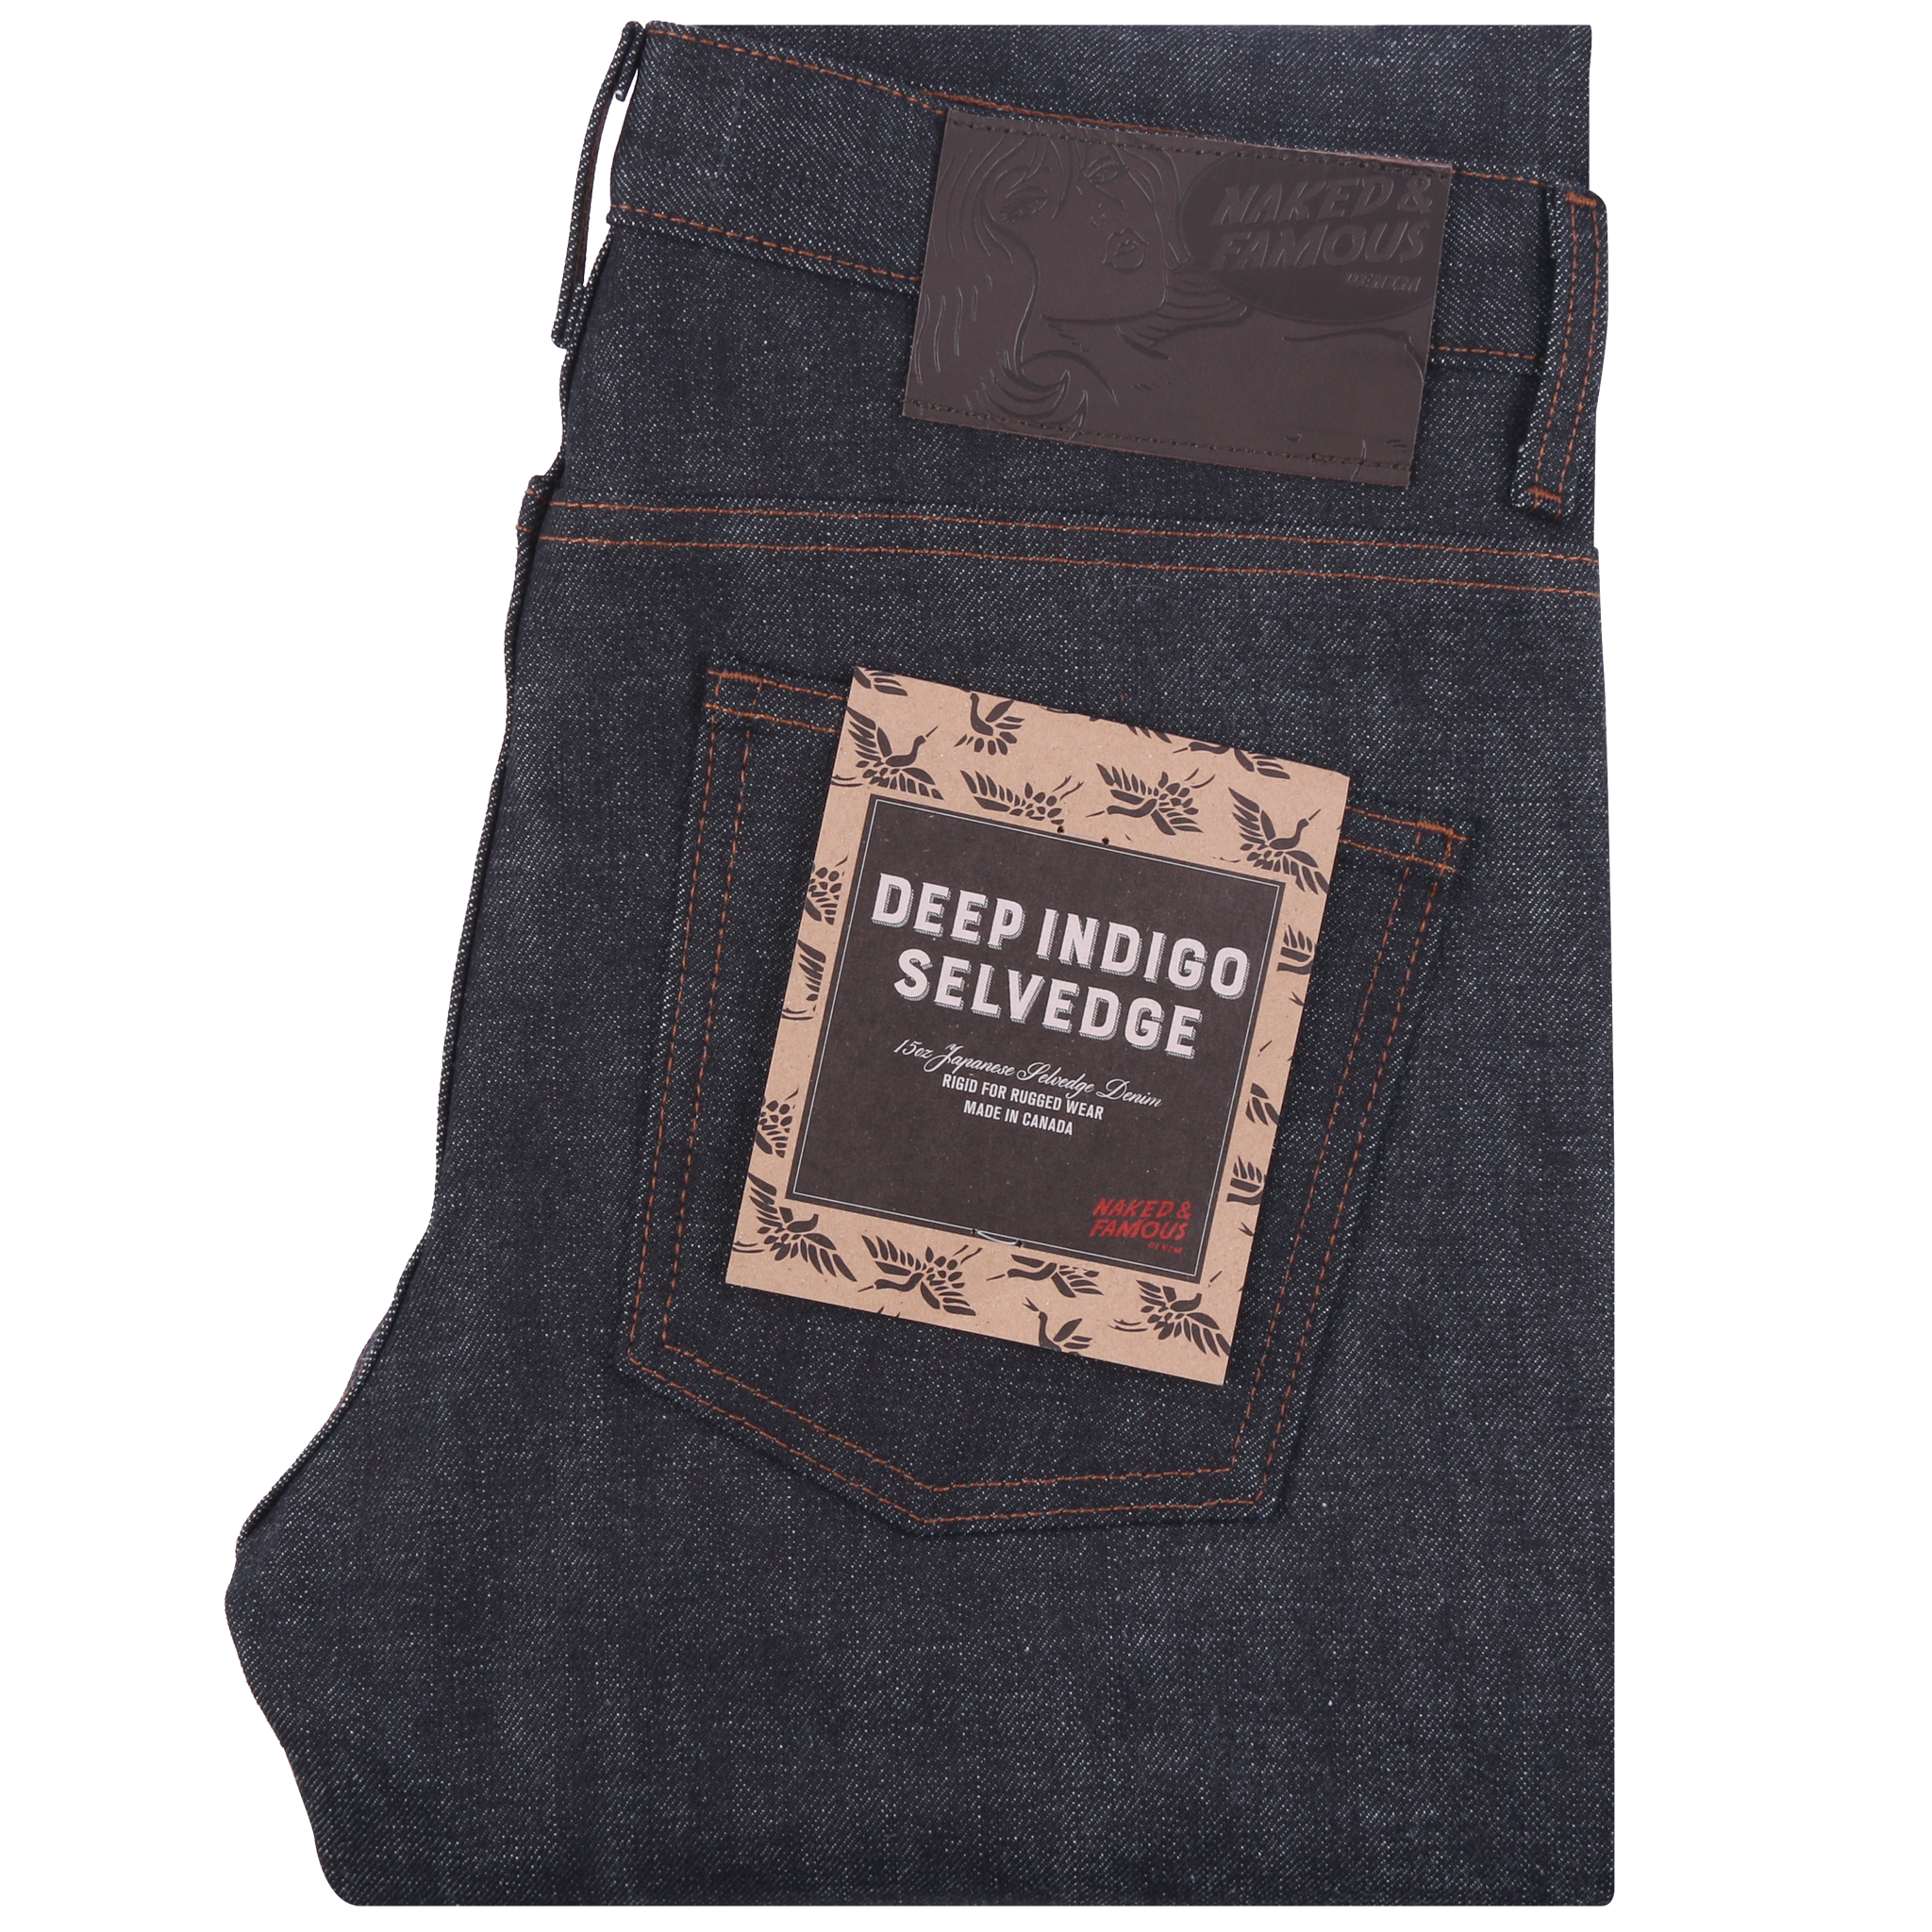 Deep Indigo Rigid Selvedge Jeans Folded